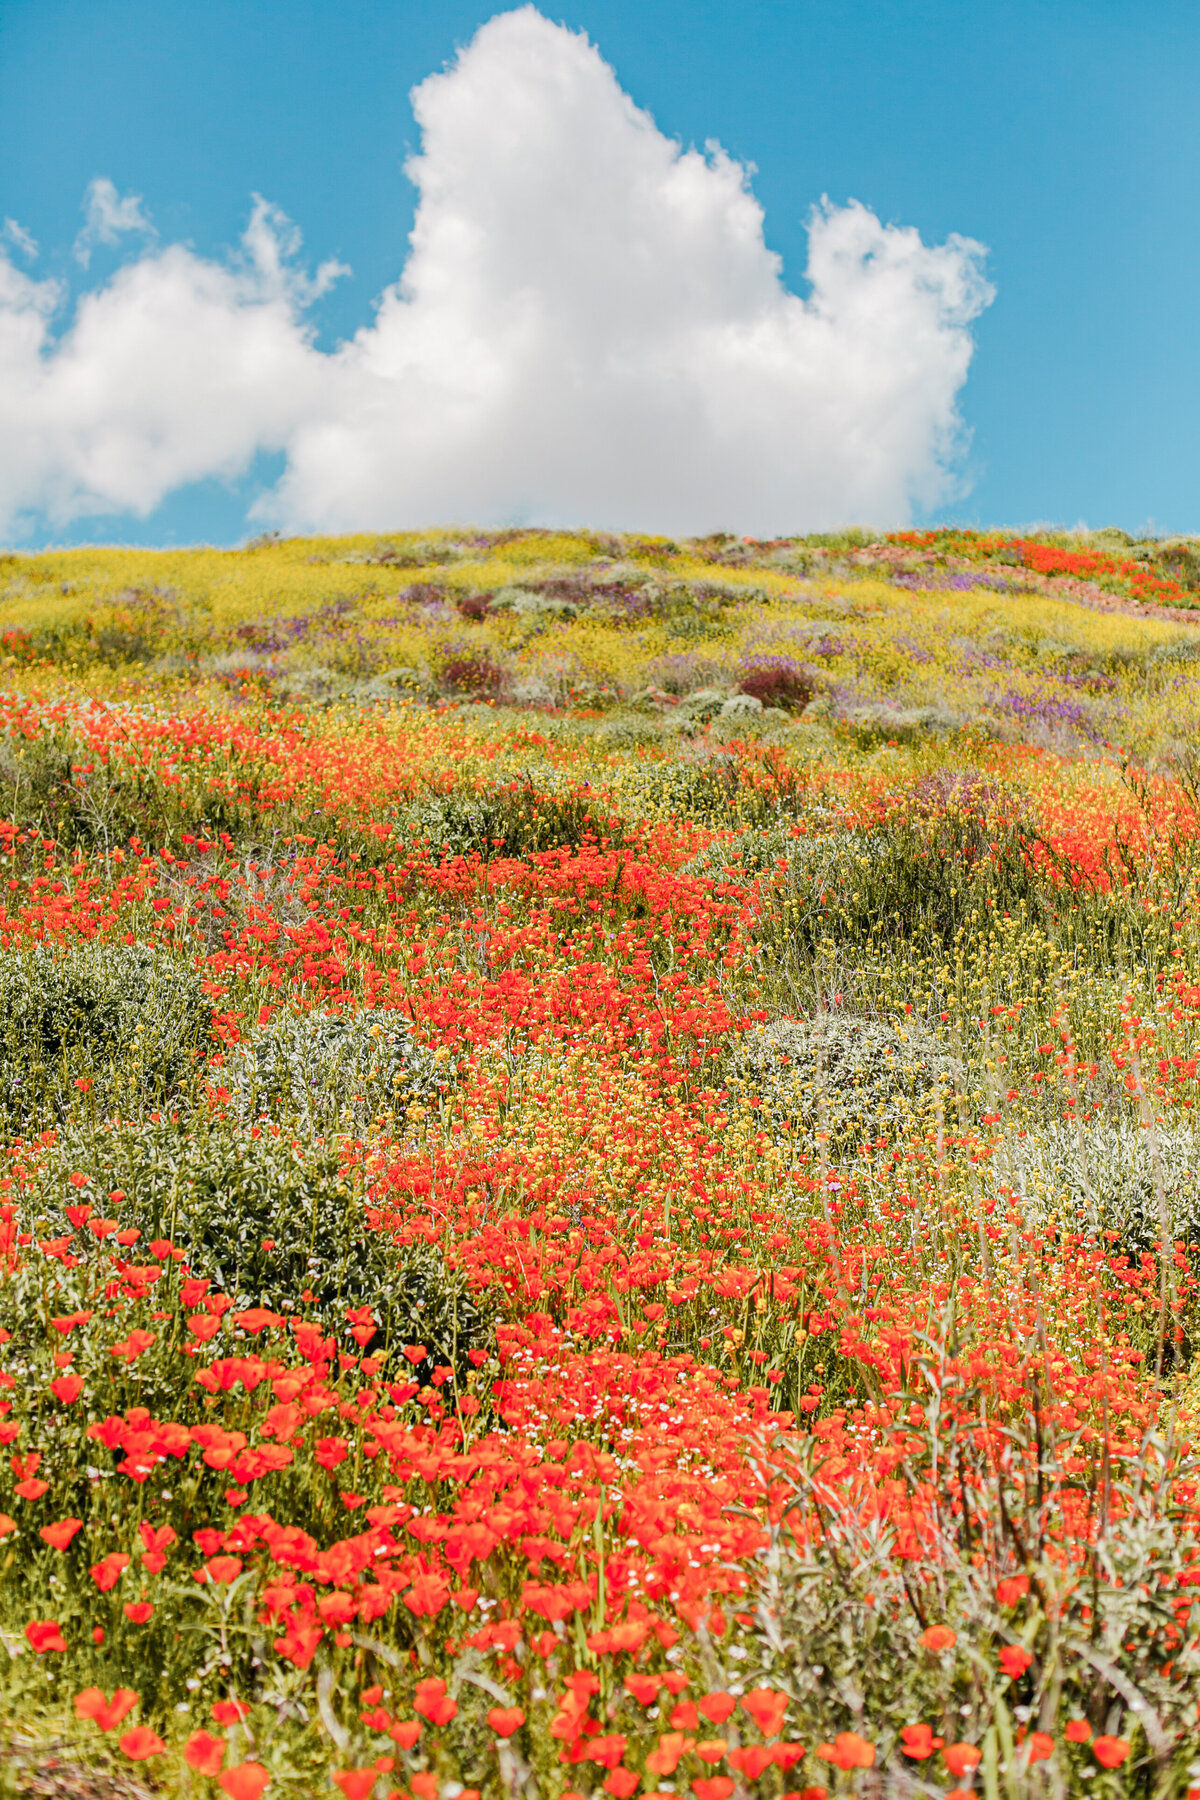 052-053-KBP-superbloom-Poppy-Fields-002